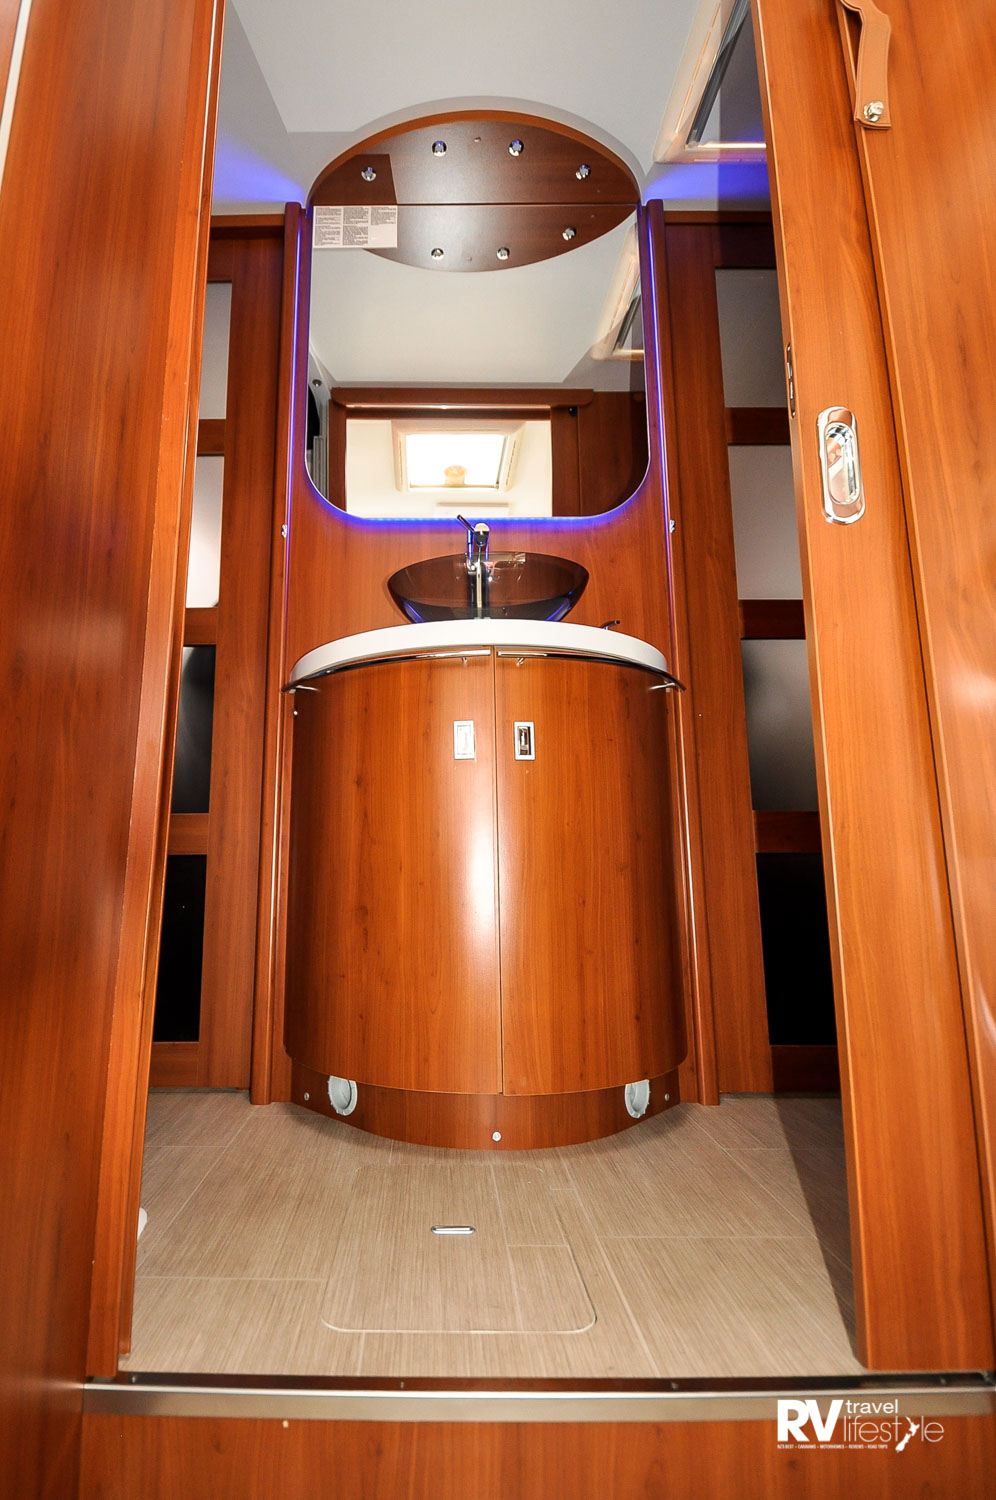 From the front to rear: entry door behind driver, kitchen and bathroom midship, large L-shaped lounge at rear with electric drop-down bed in the ceiling. Dining behind the passenger cab area, both cab seats swivel to the rear